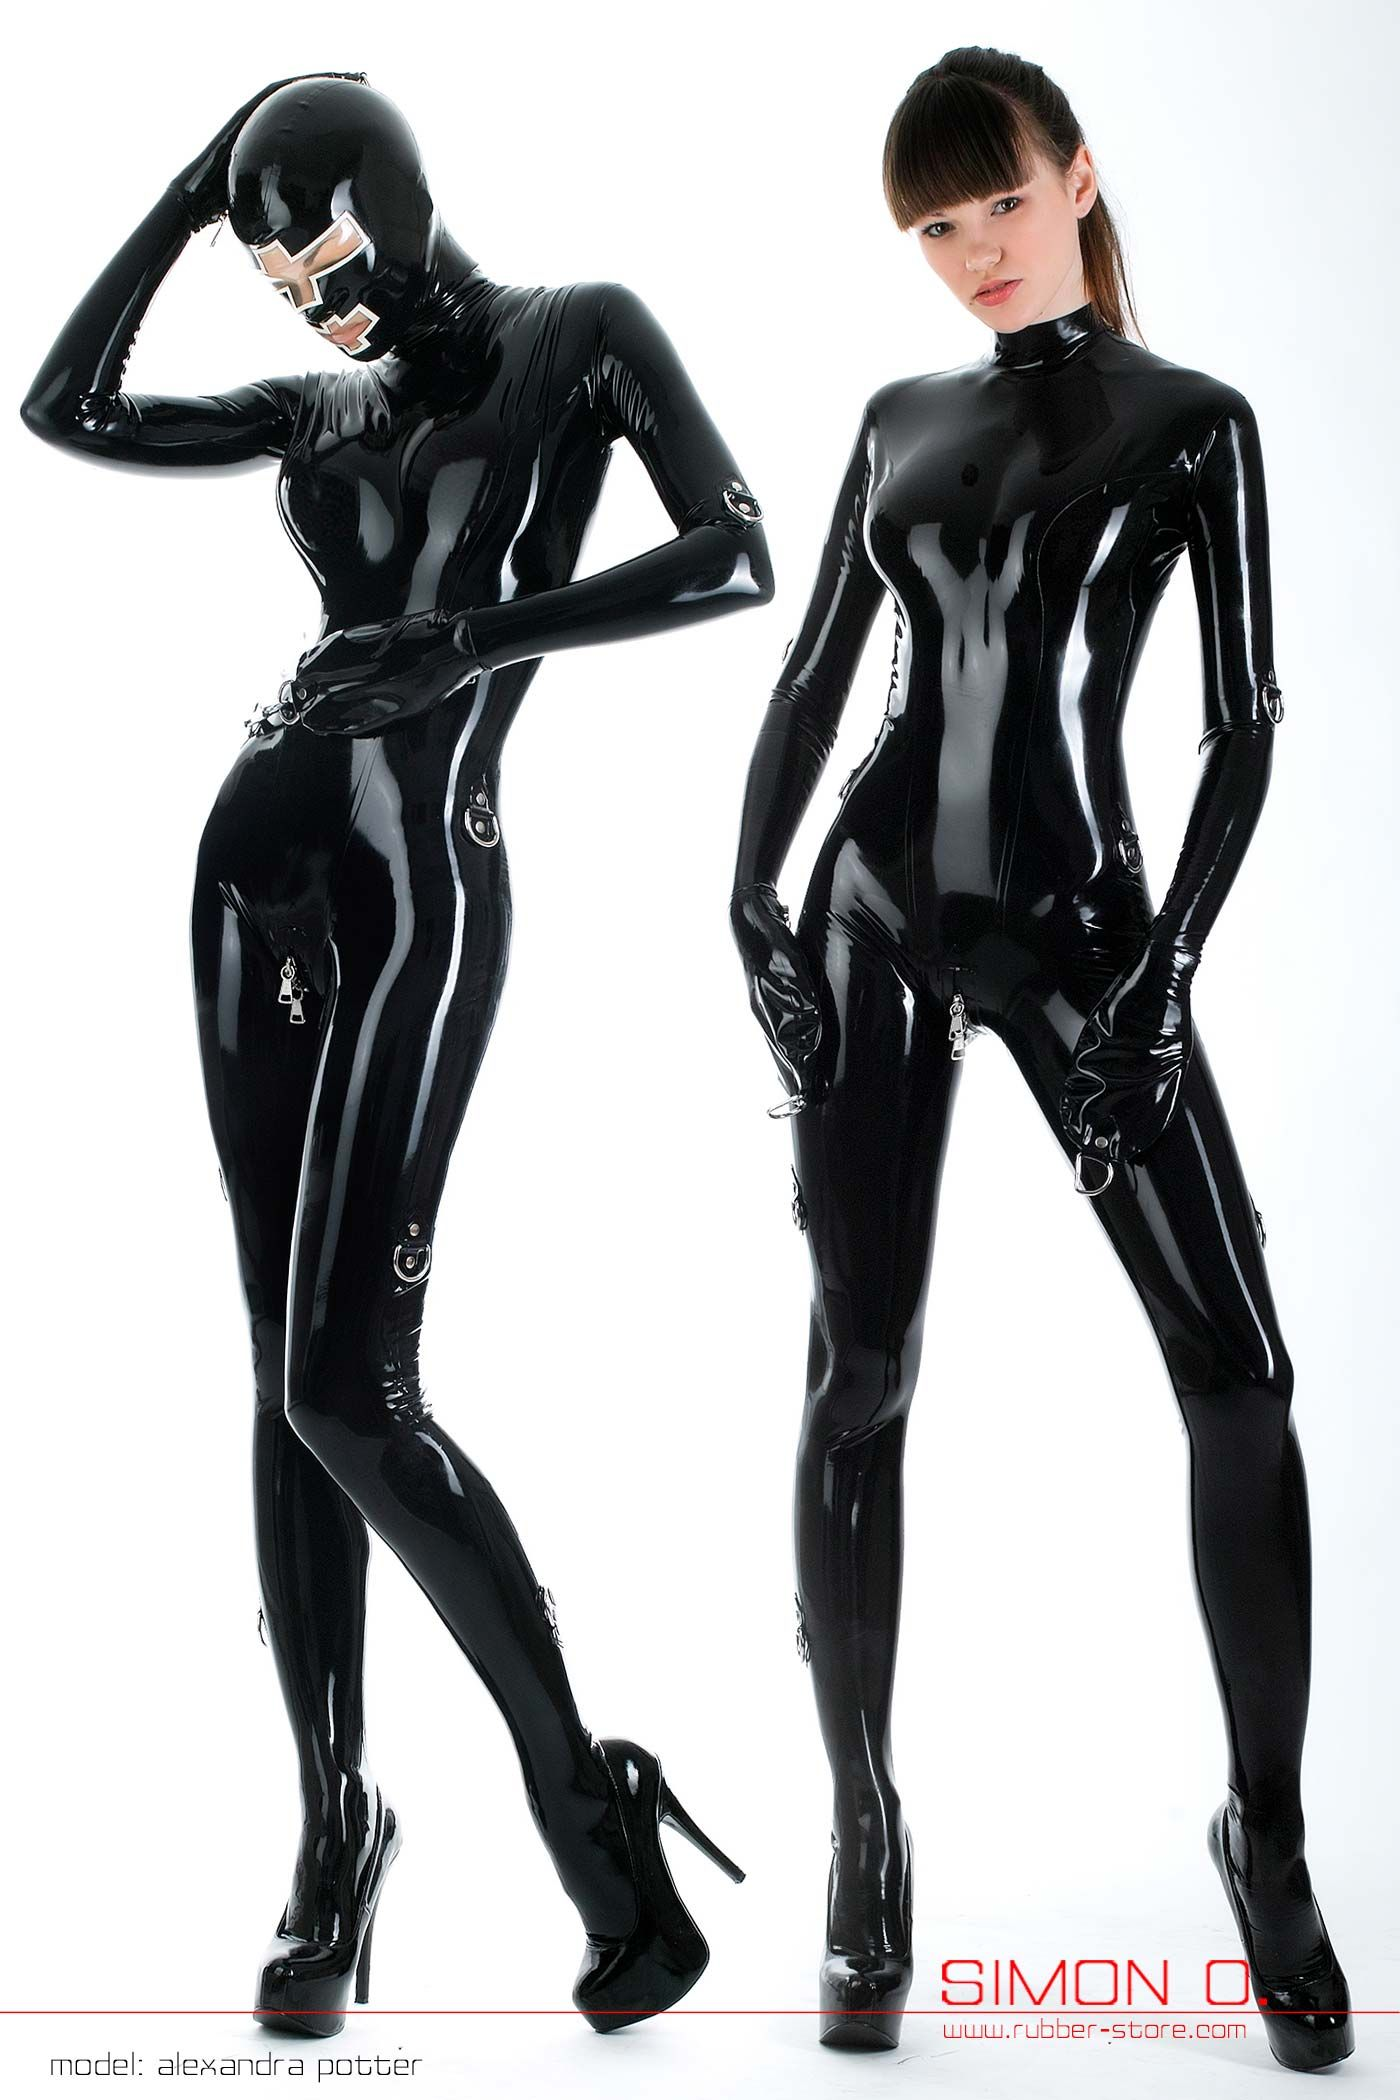 Girls in latex suits